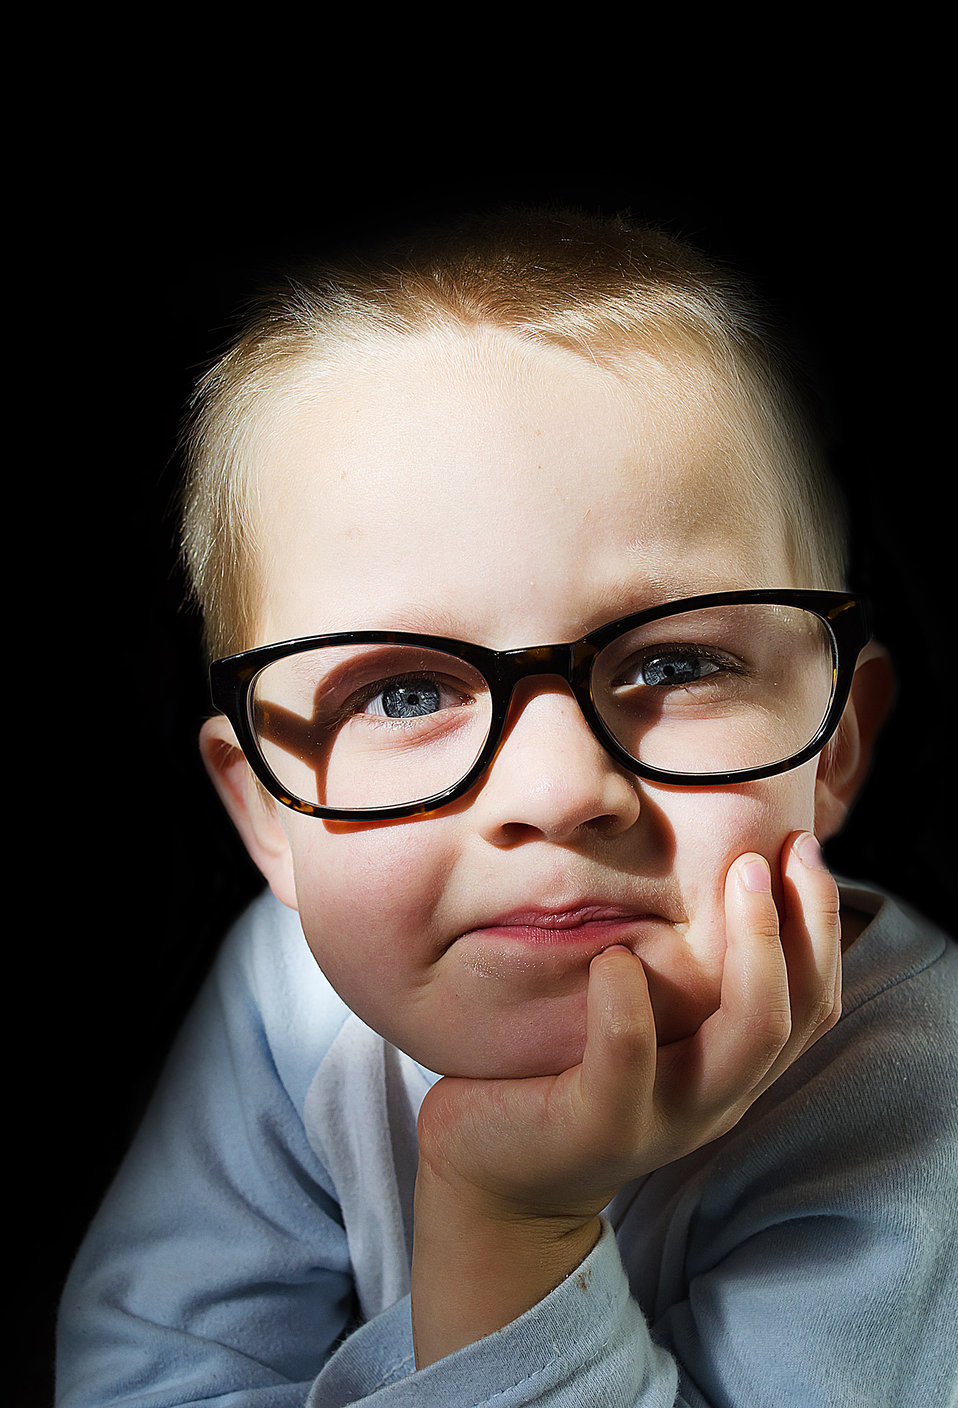 Child and optical glasses